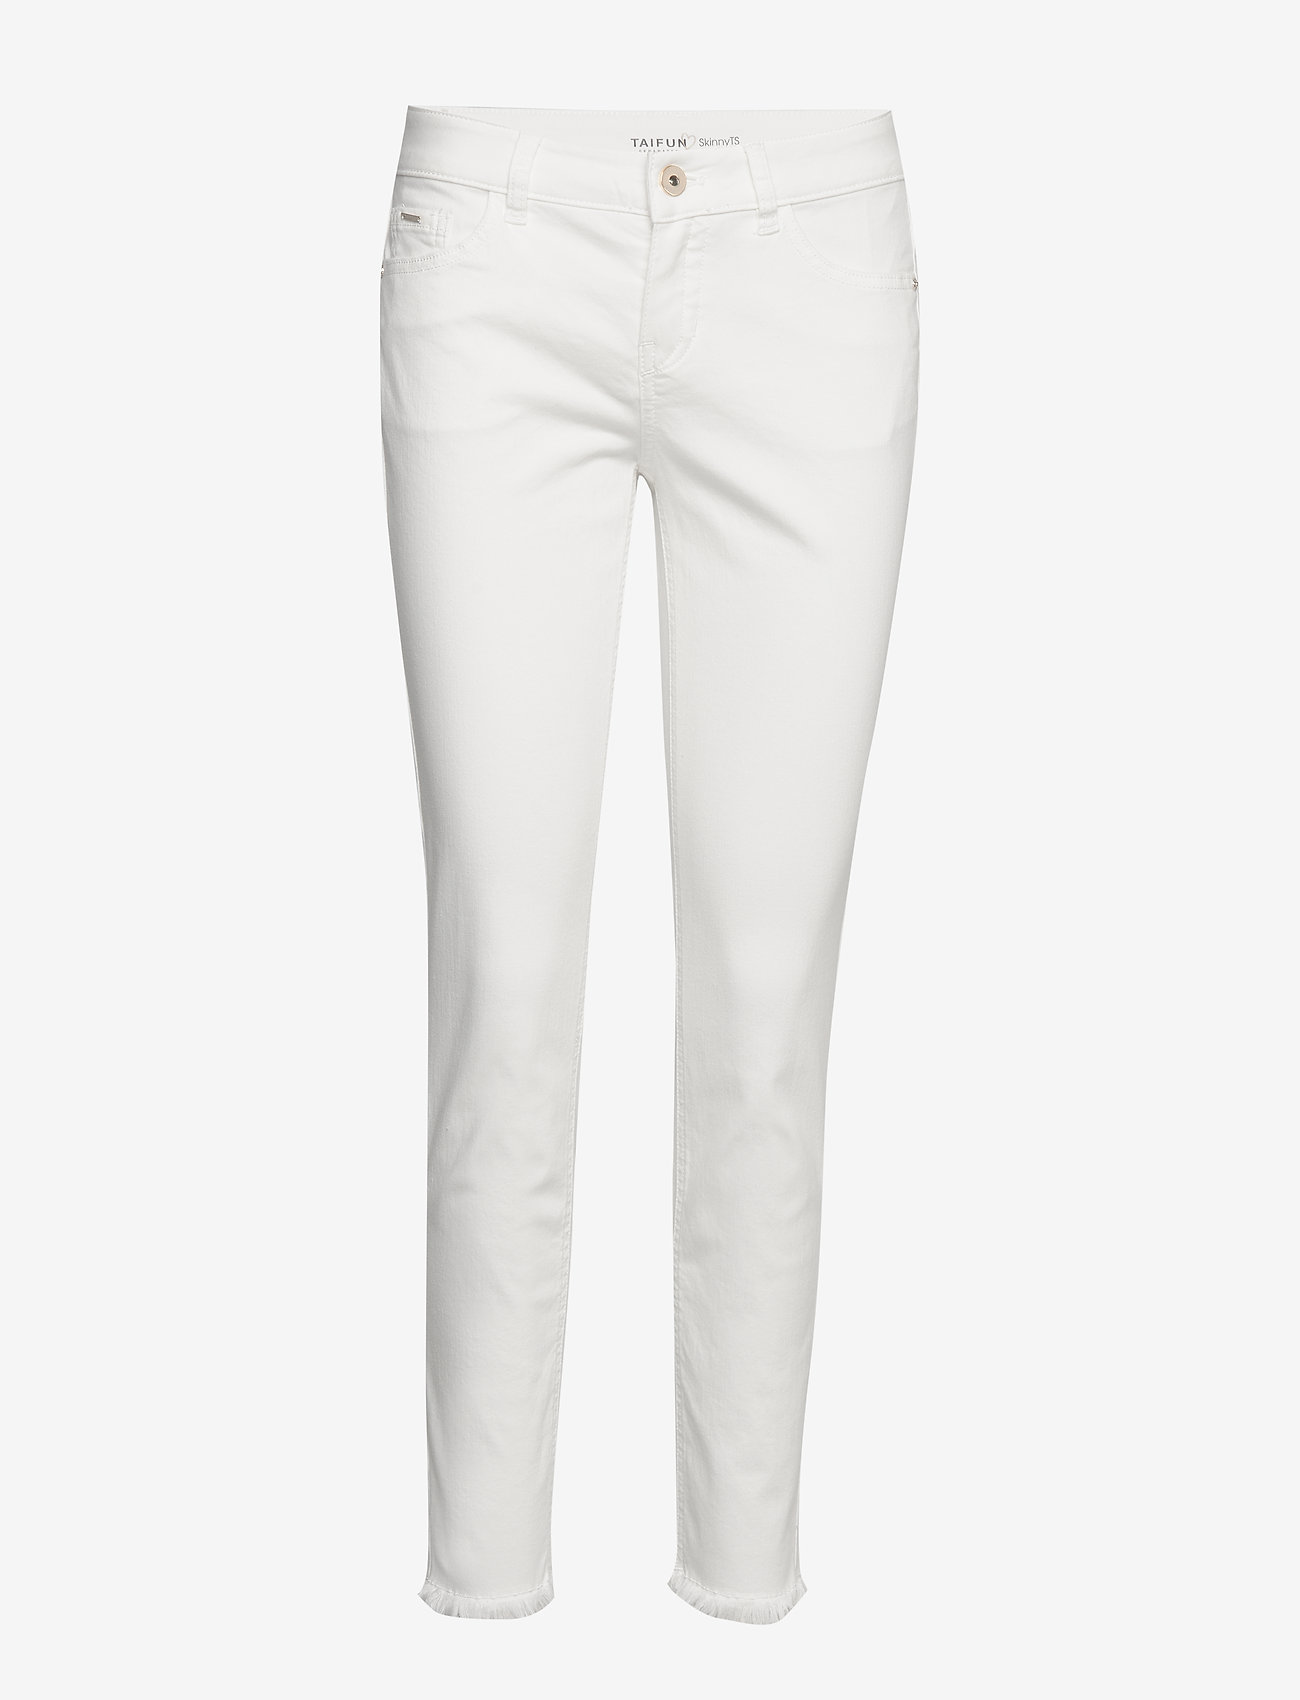 Taifun - CROP TROUSERS JEANS - skinny jeans - offwhite - 0